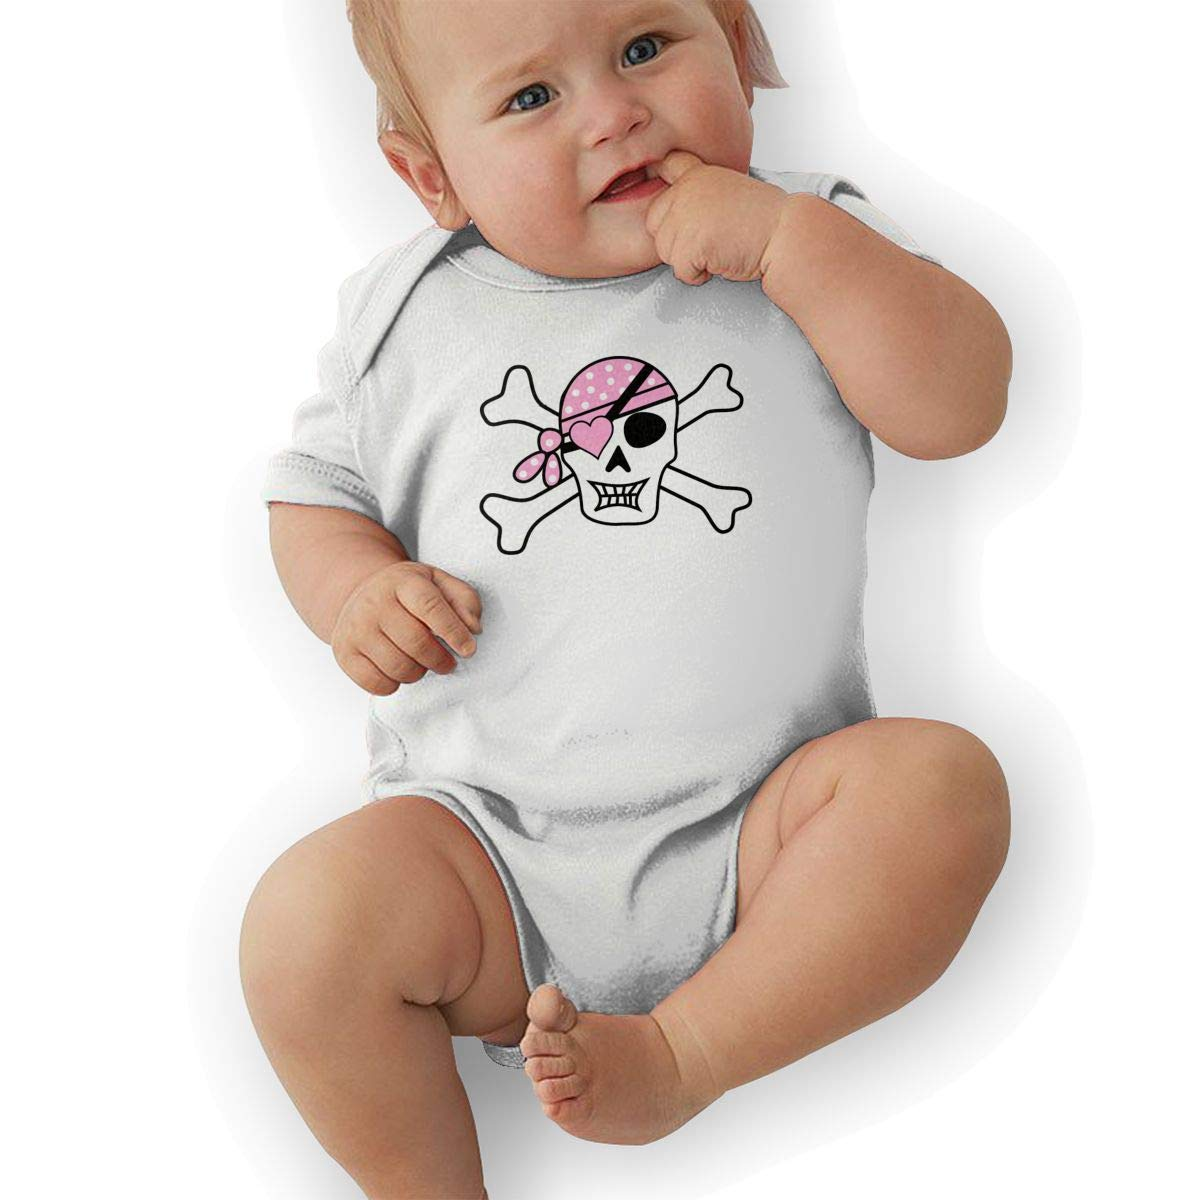 HappyLifea Pirates Pink Turban Newborn Baby Short Sleeve Romper Infant Summer Clothing Black